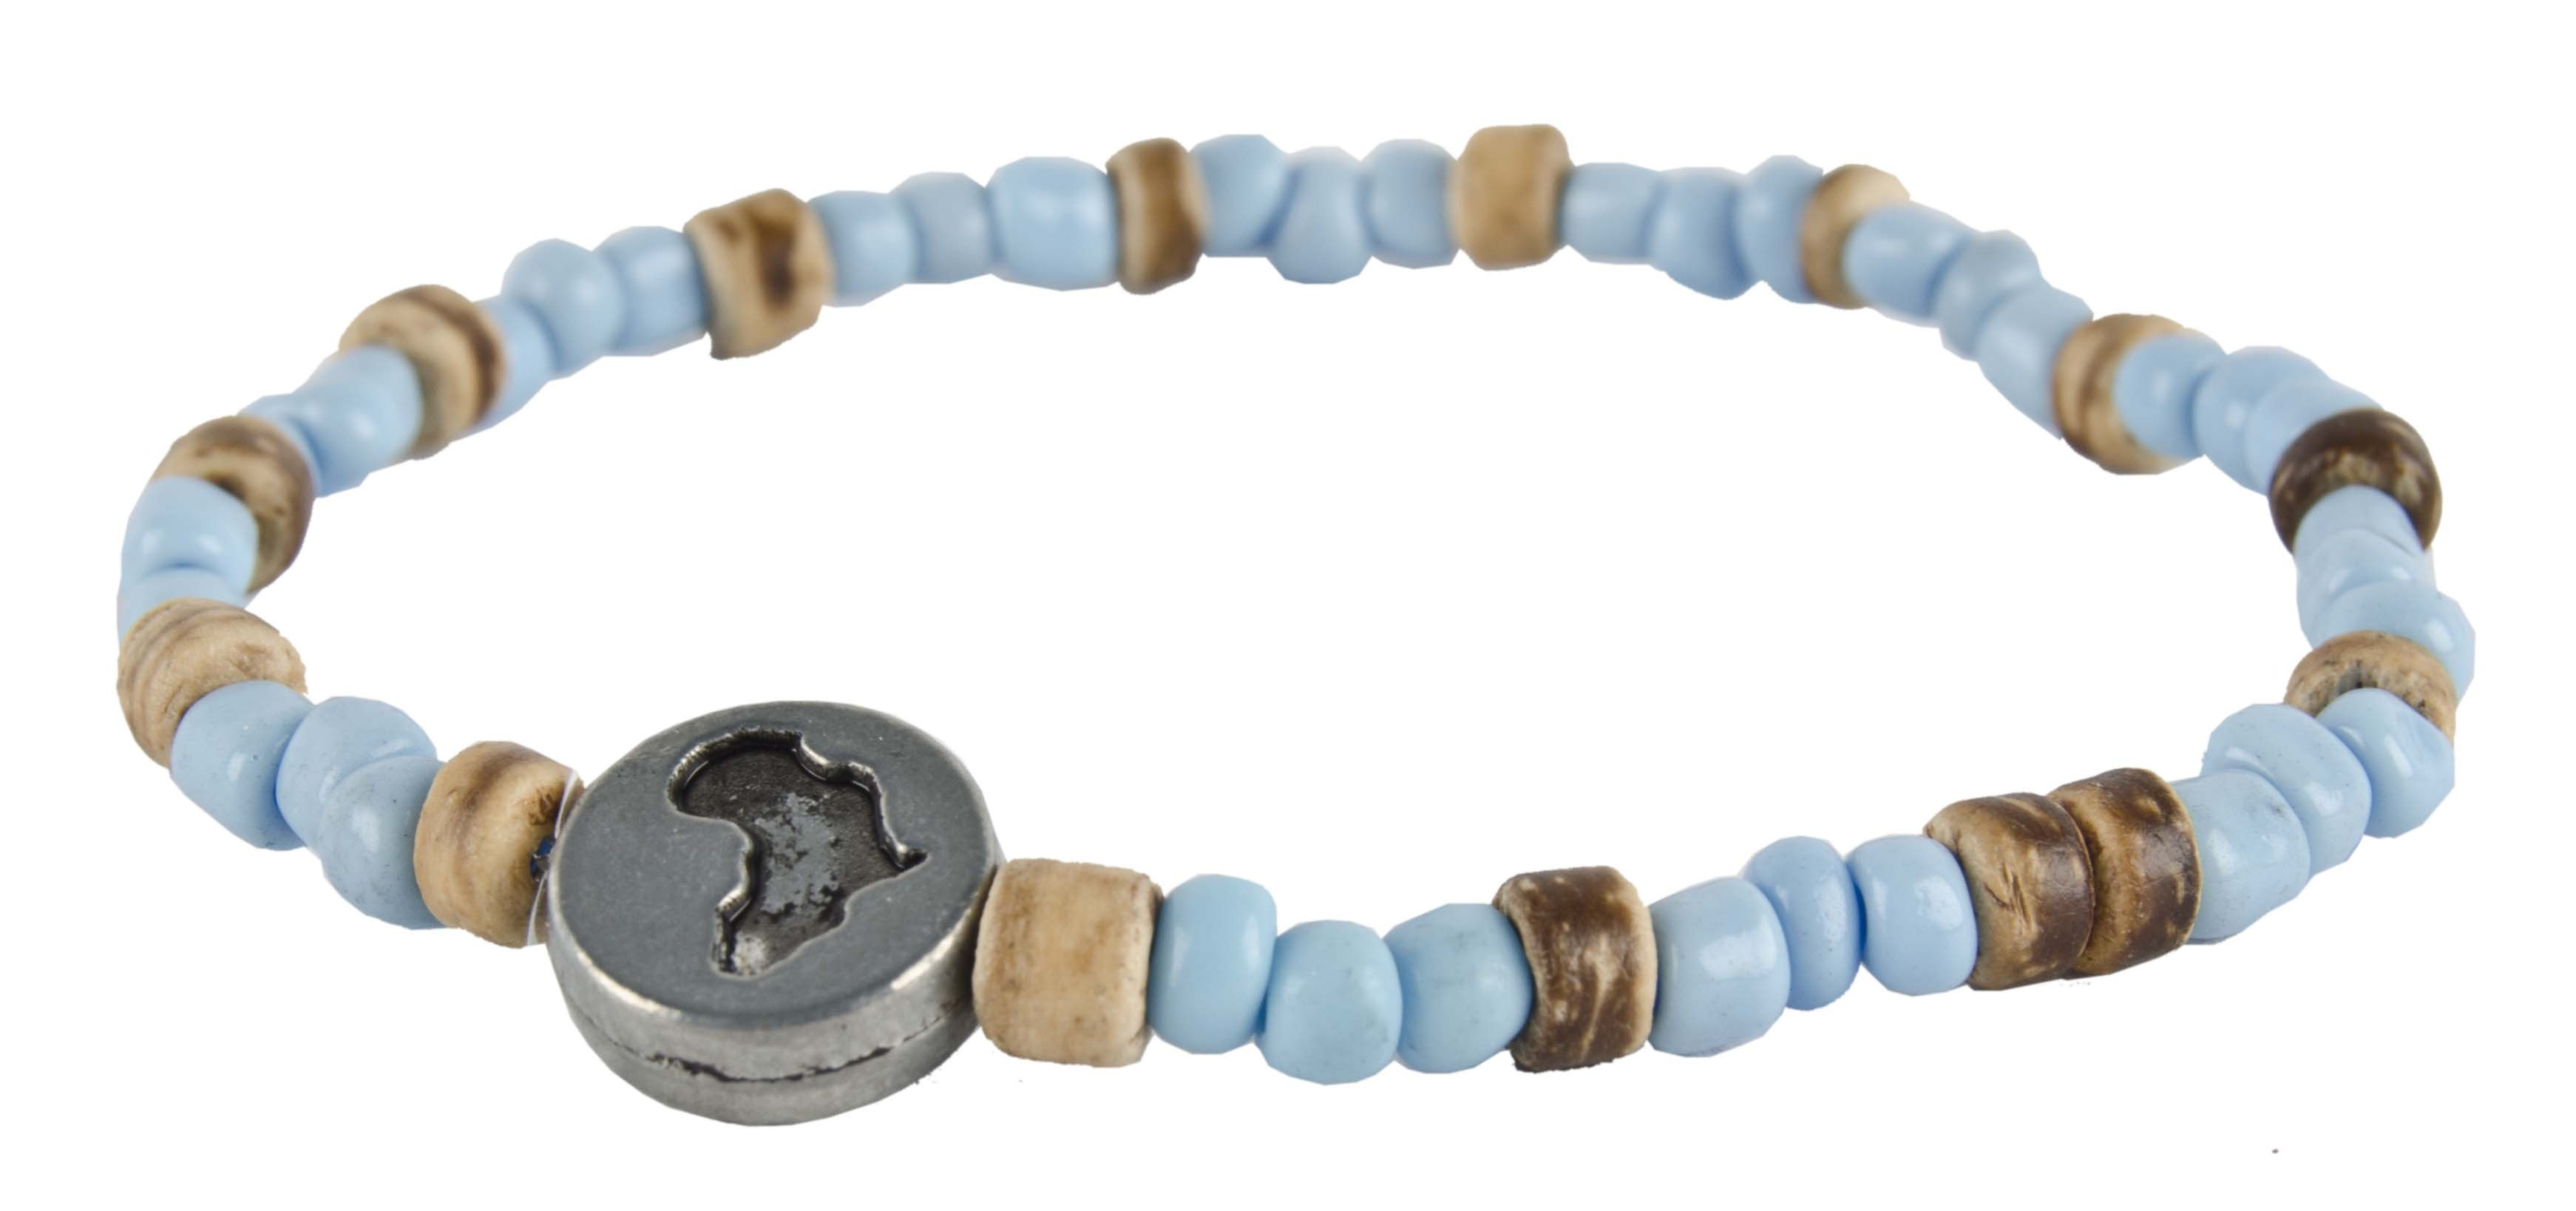 African Bead Bracelets Charity The Best Ancgweb Org Of 2018